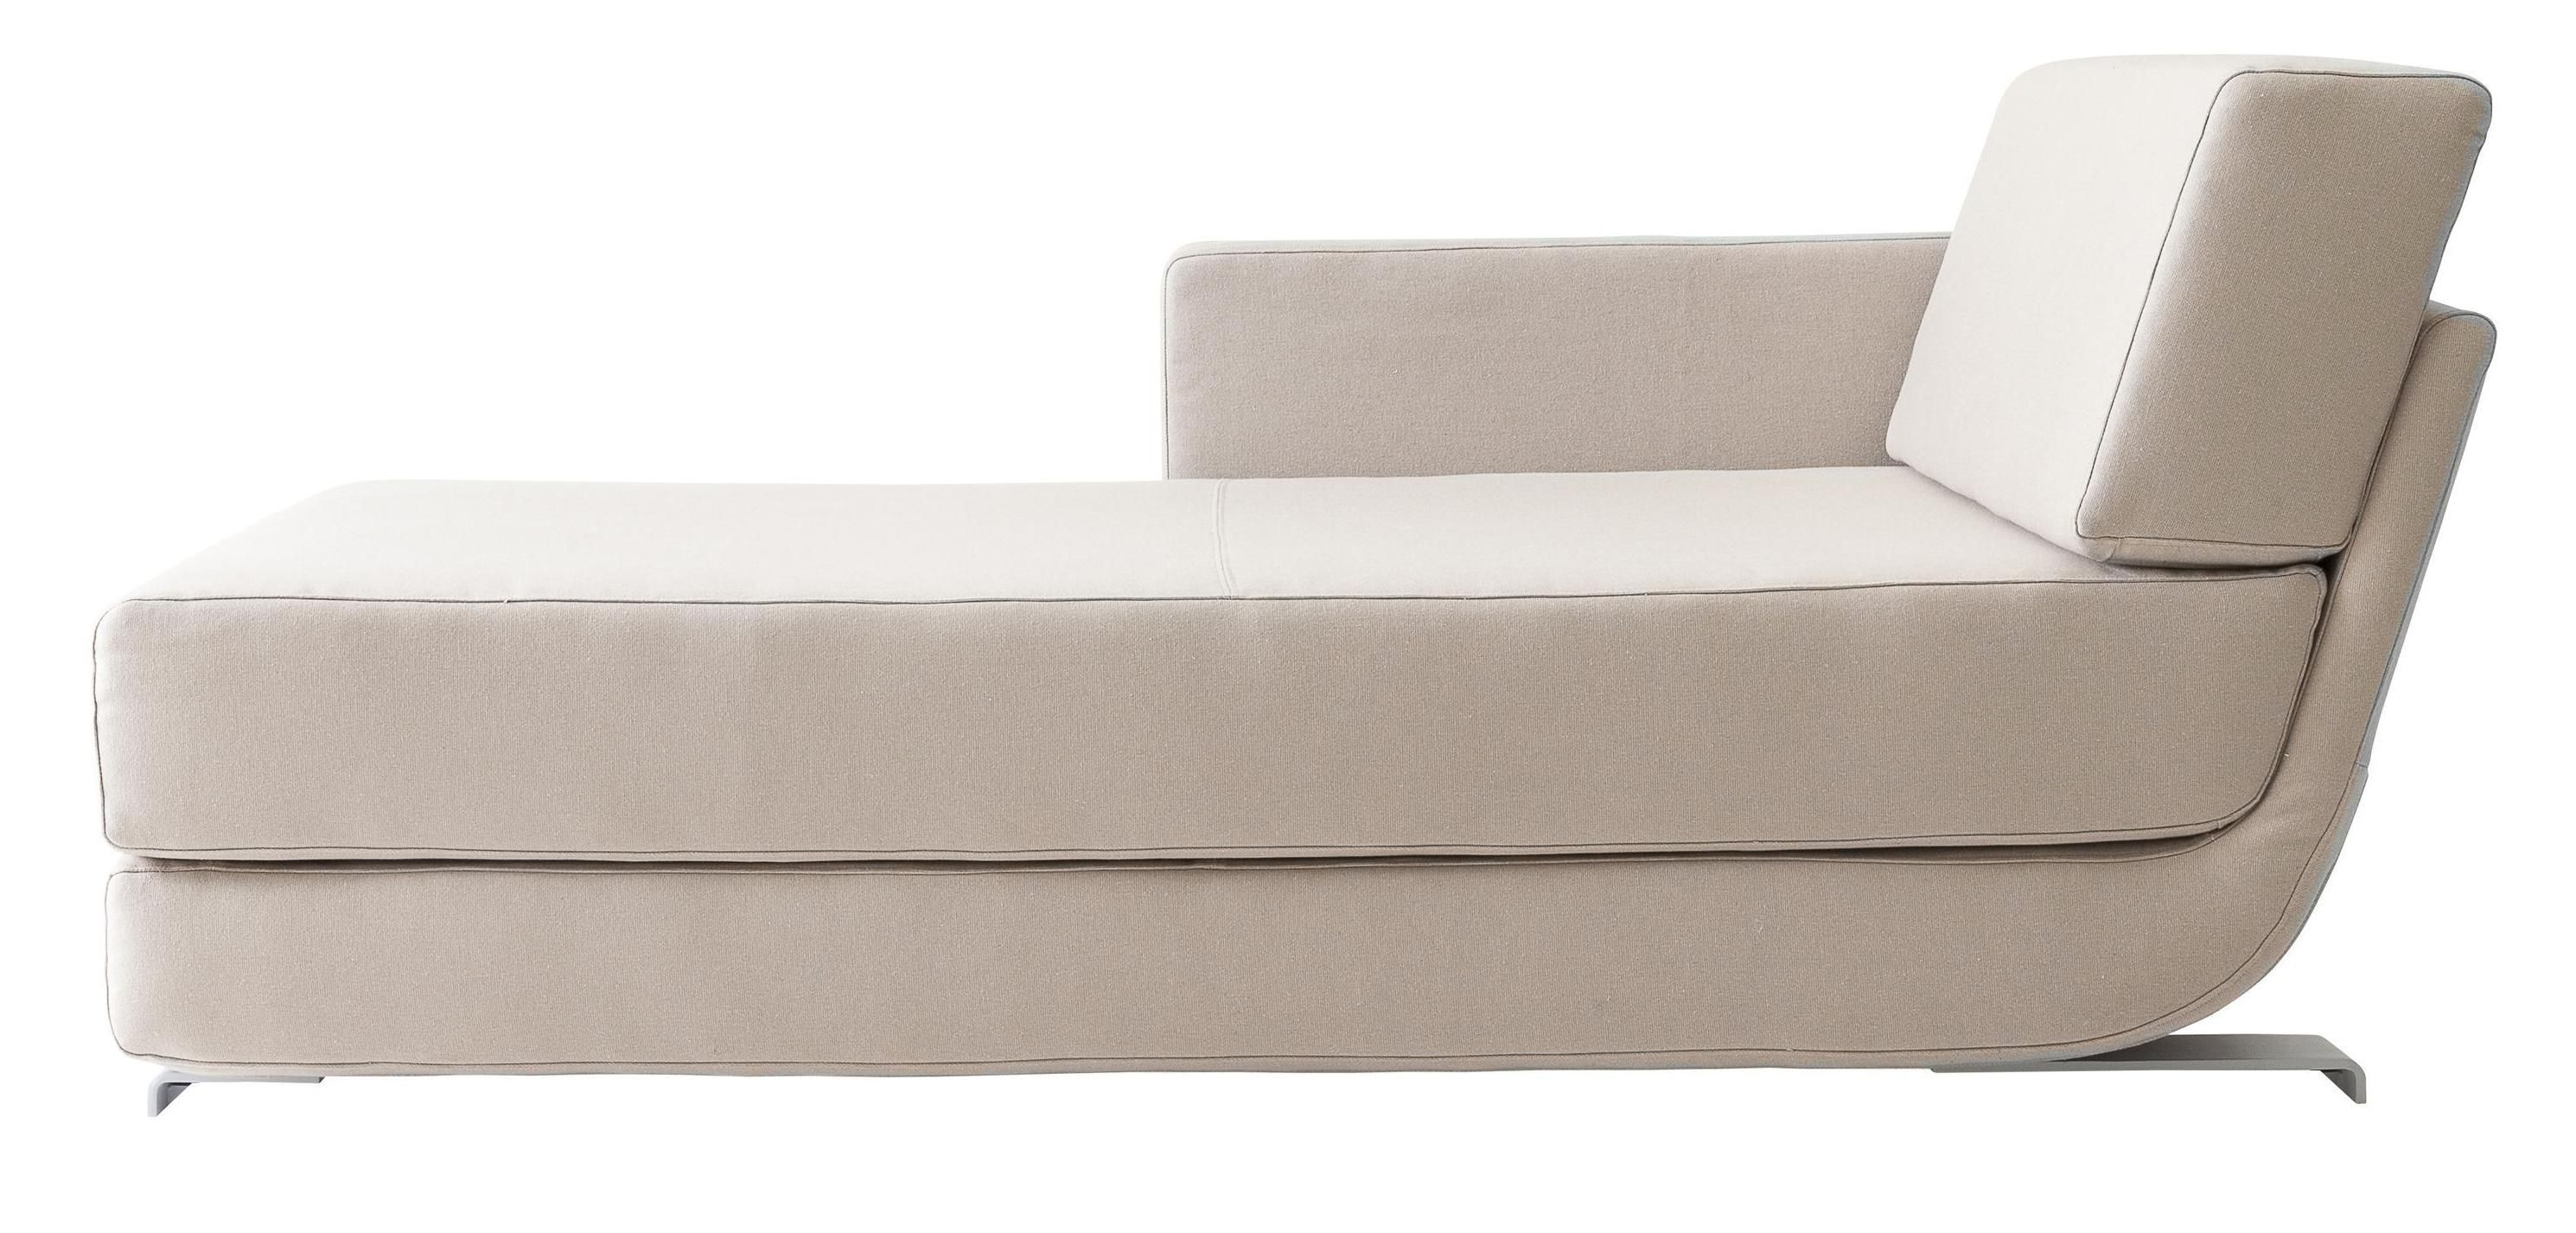 Photo of Lounge Chaise Longues by Softline in Chaise Longues